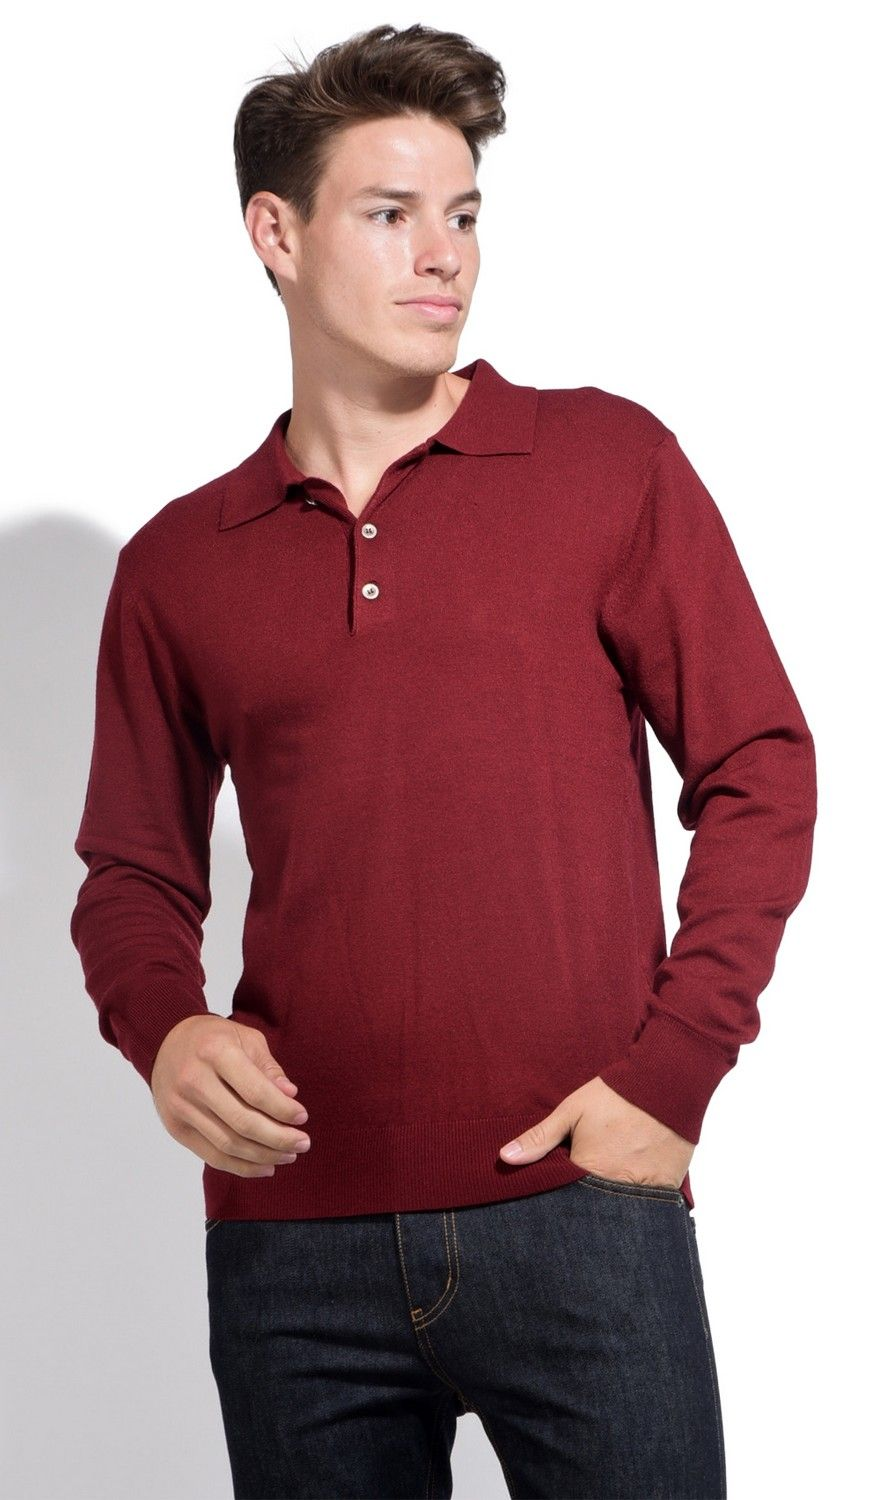 William De Faye Polo Neck Sweater with Buttons in Maroon